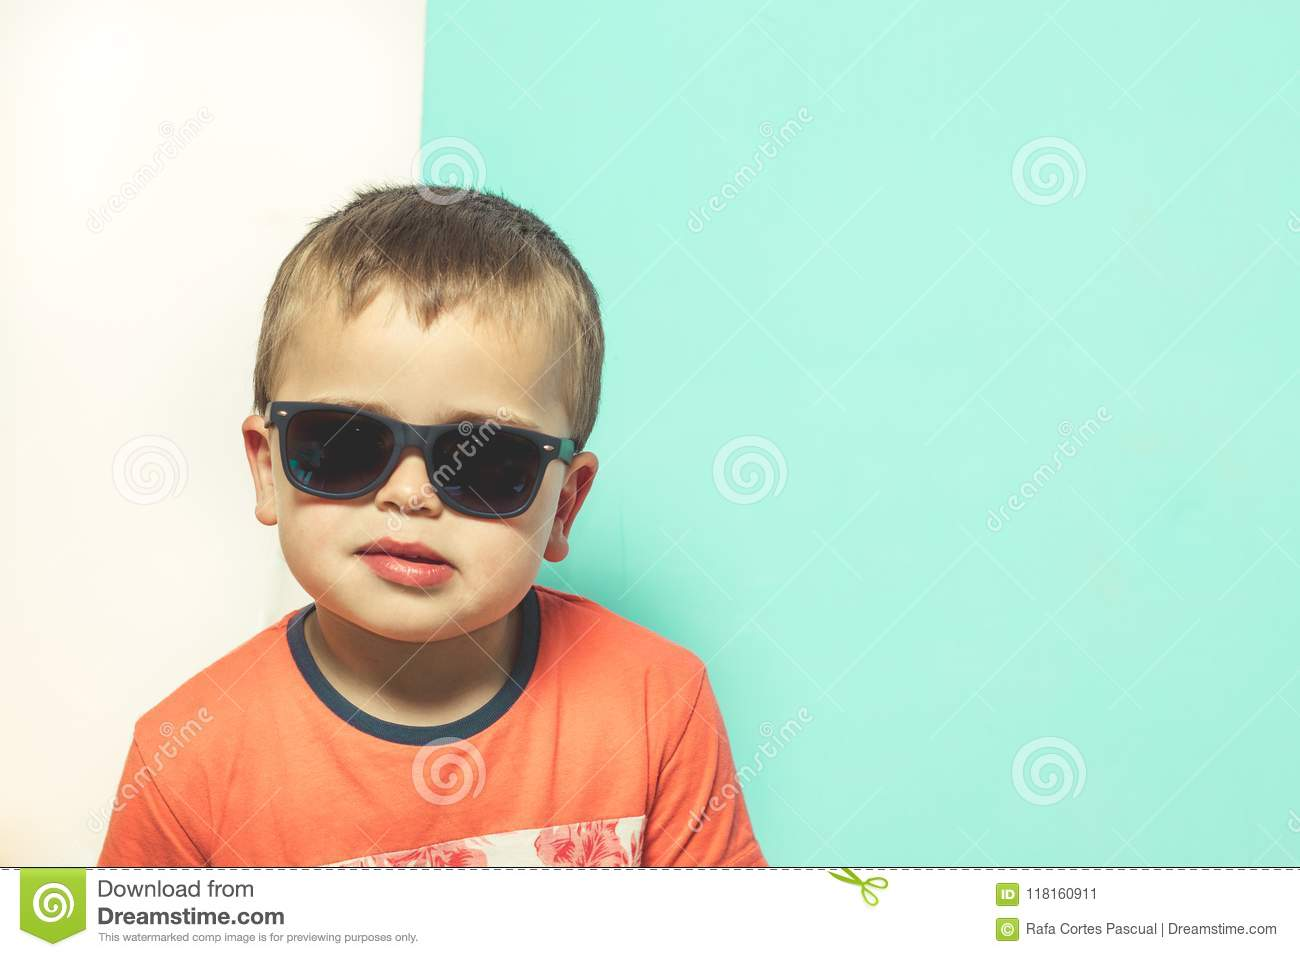 c50bc5274f3a Child wearing sunglasses with a serious attitude. Blond Kid with sunglasses.  More similar stock images